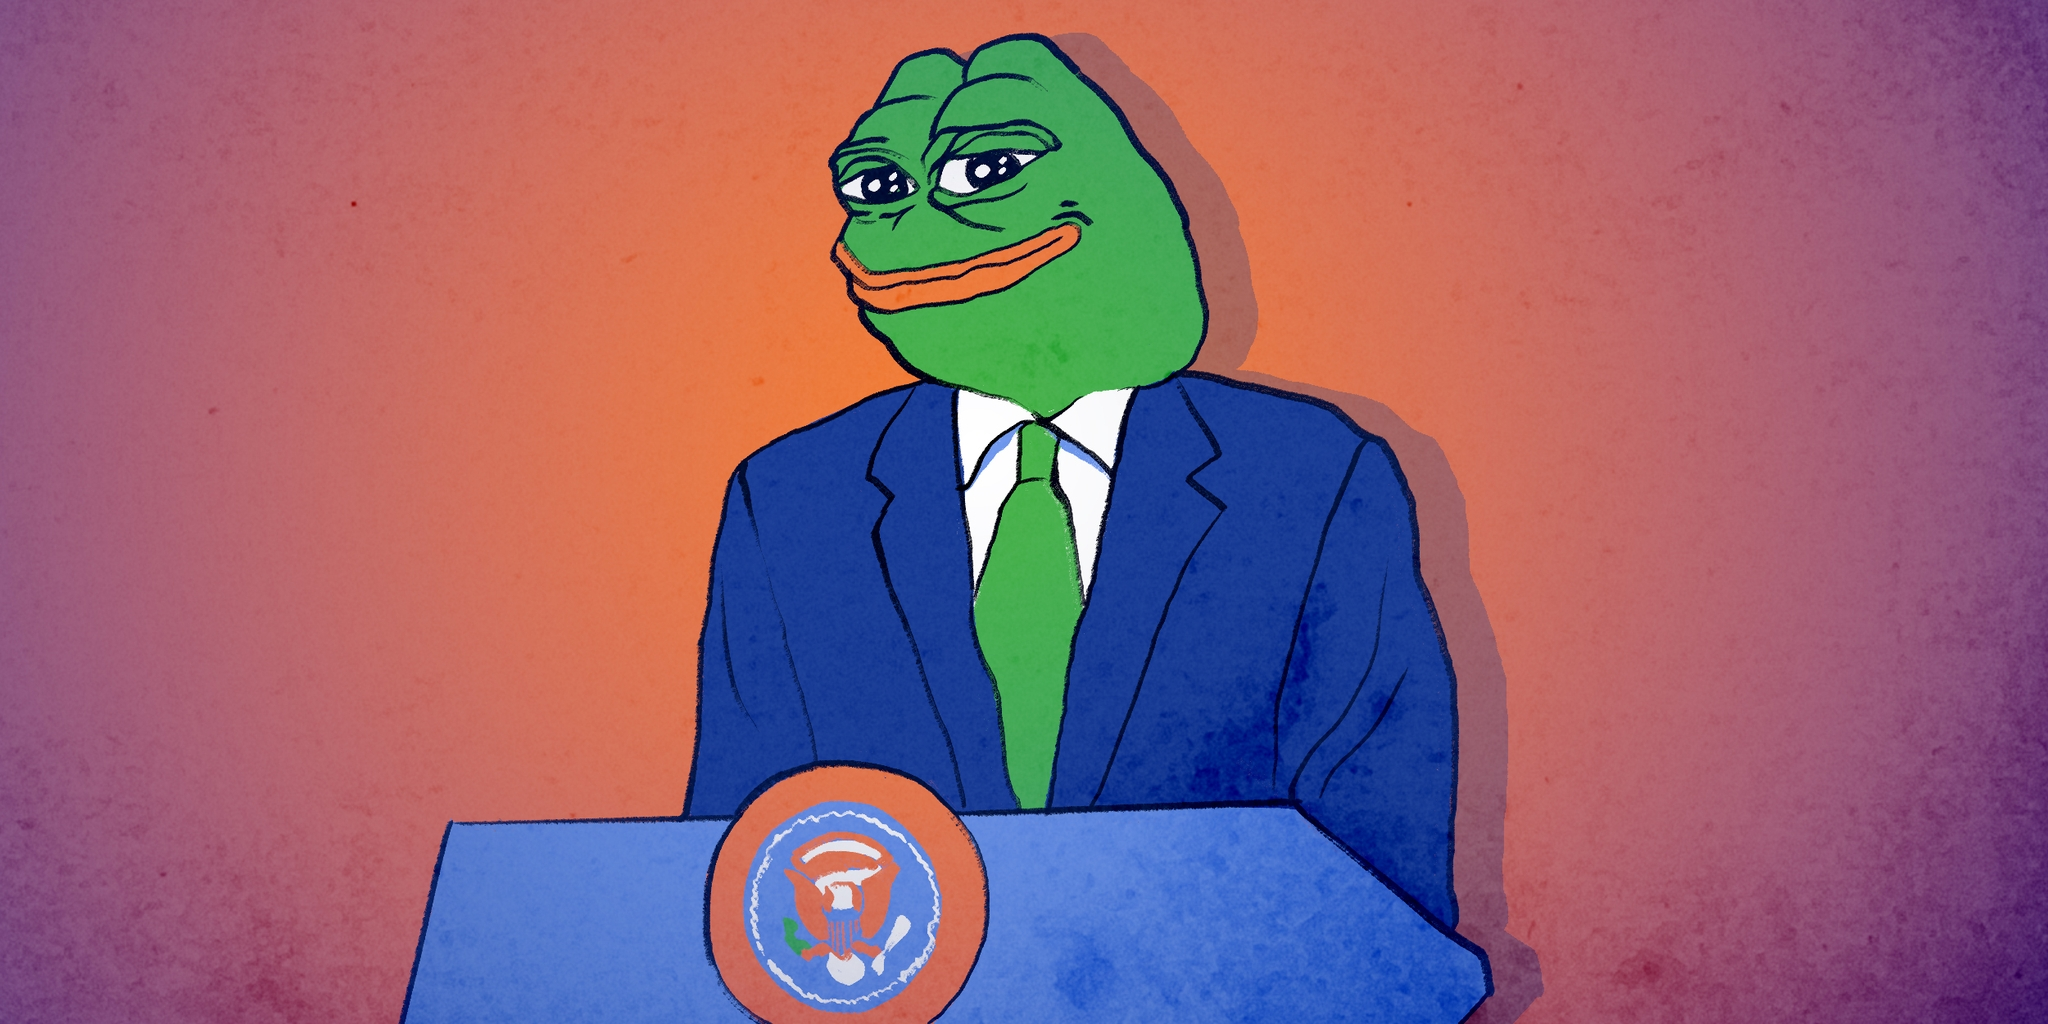 pepe the frog as president